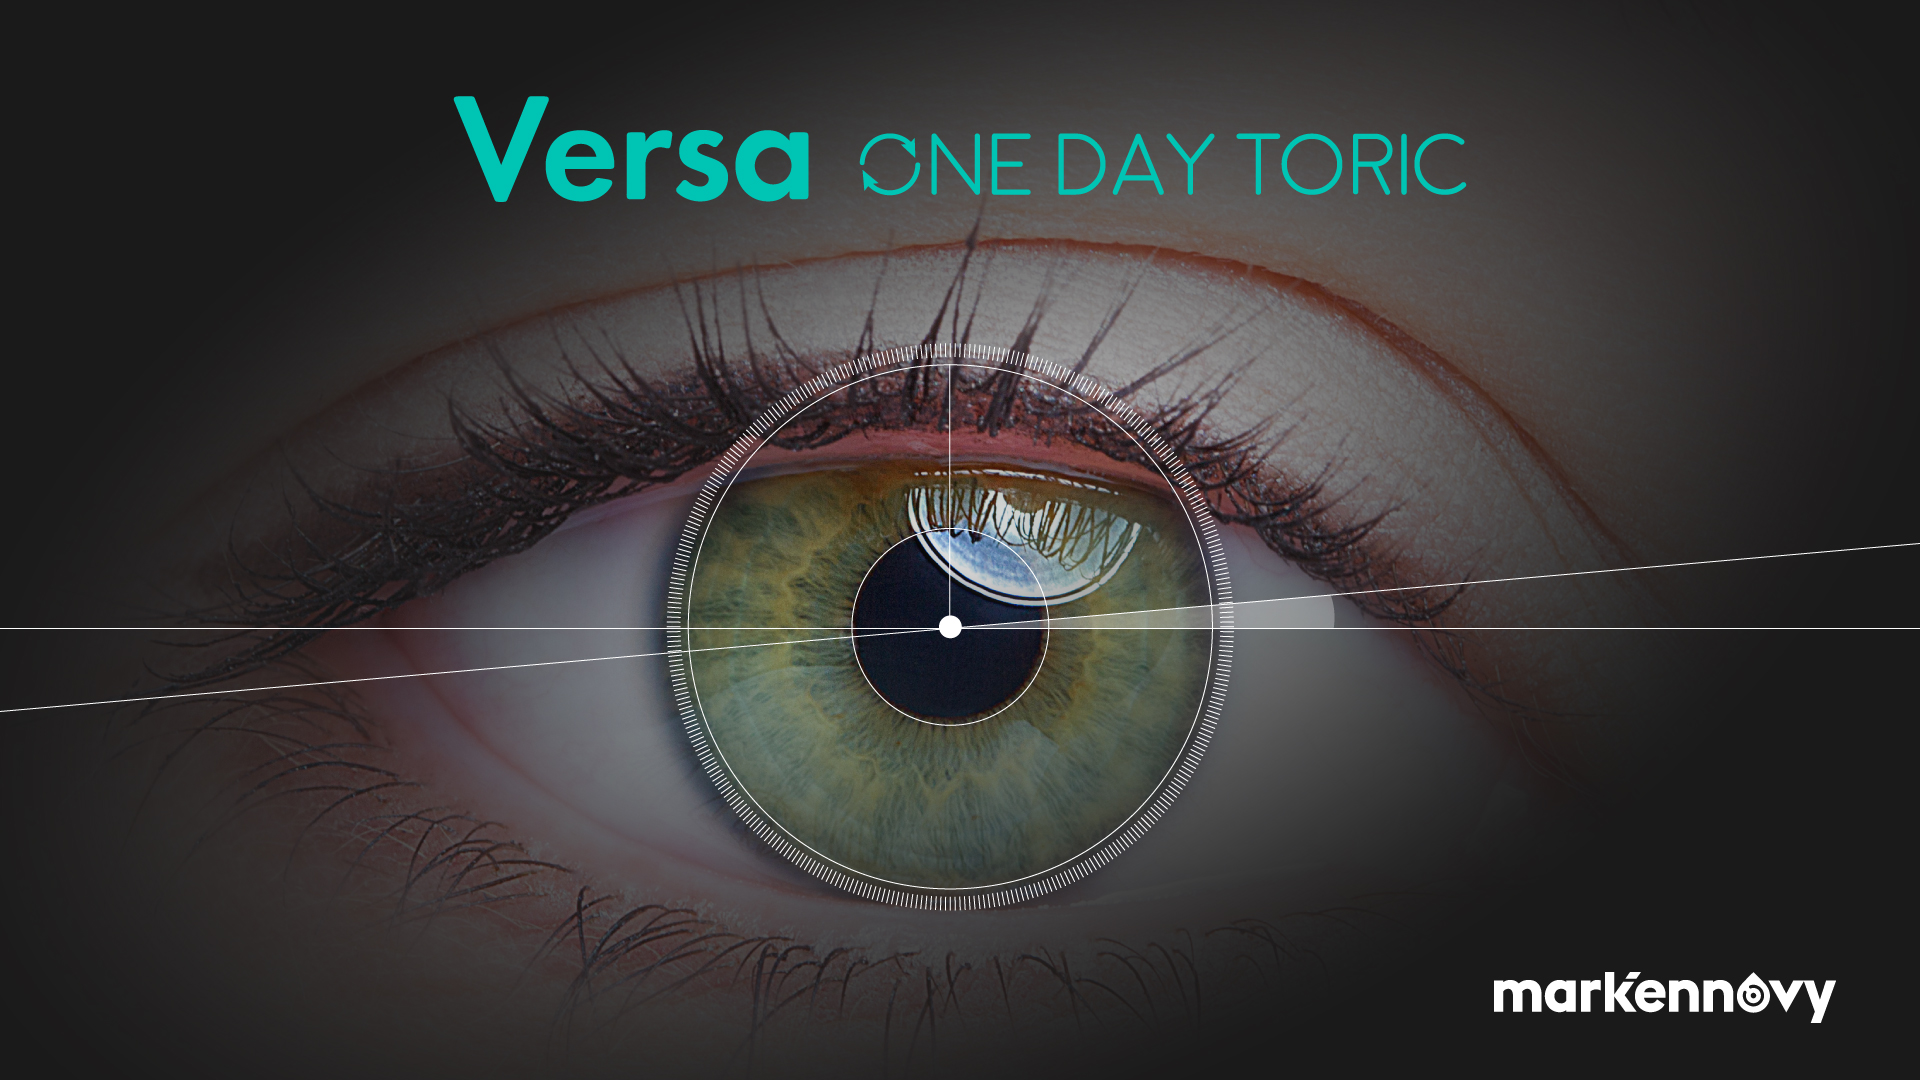 d4a0e29f39b04c Versa one day toric  World s First Made-to-Order Daily Toric Contact Lens